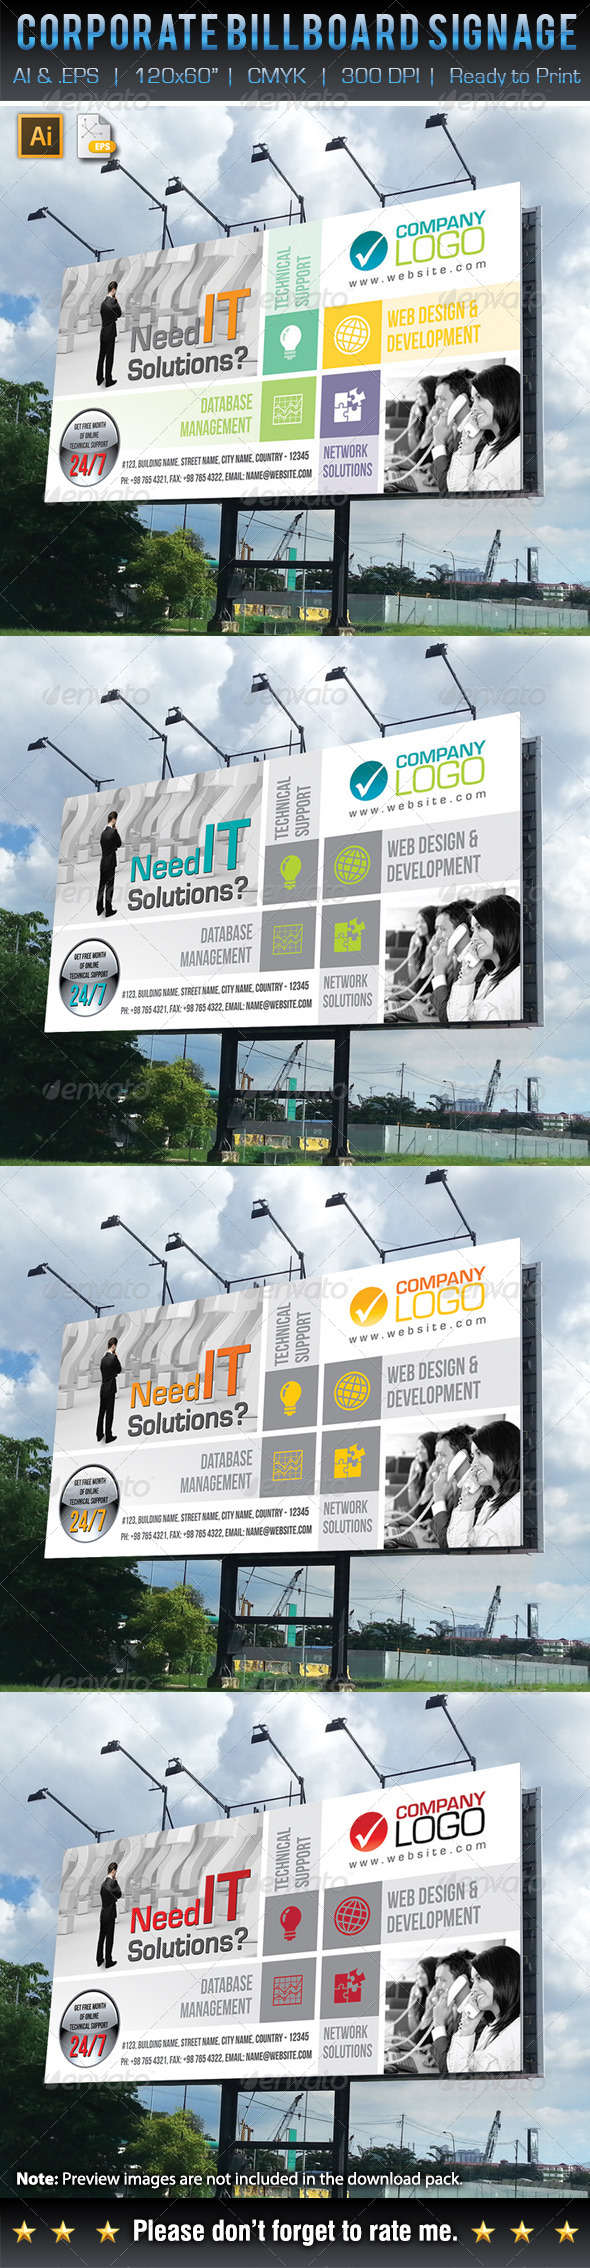 GraphicRiver Corporate Business Billboard Signage 6235061